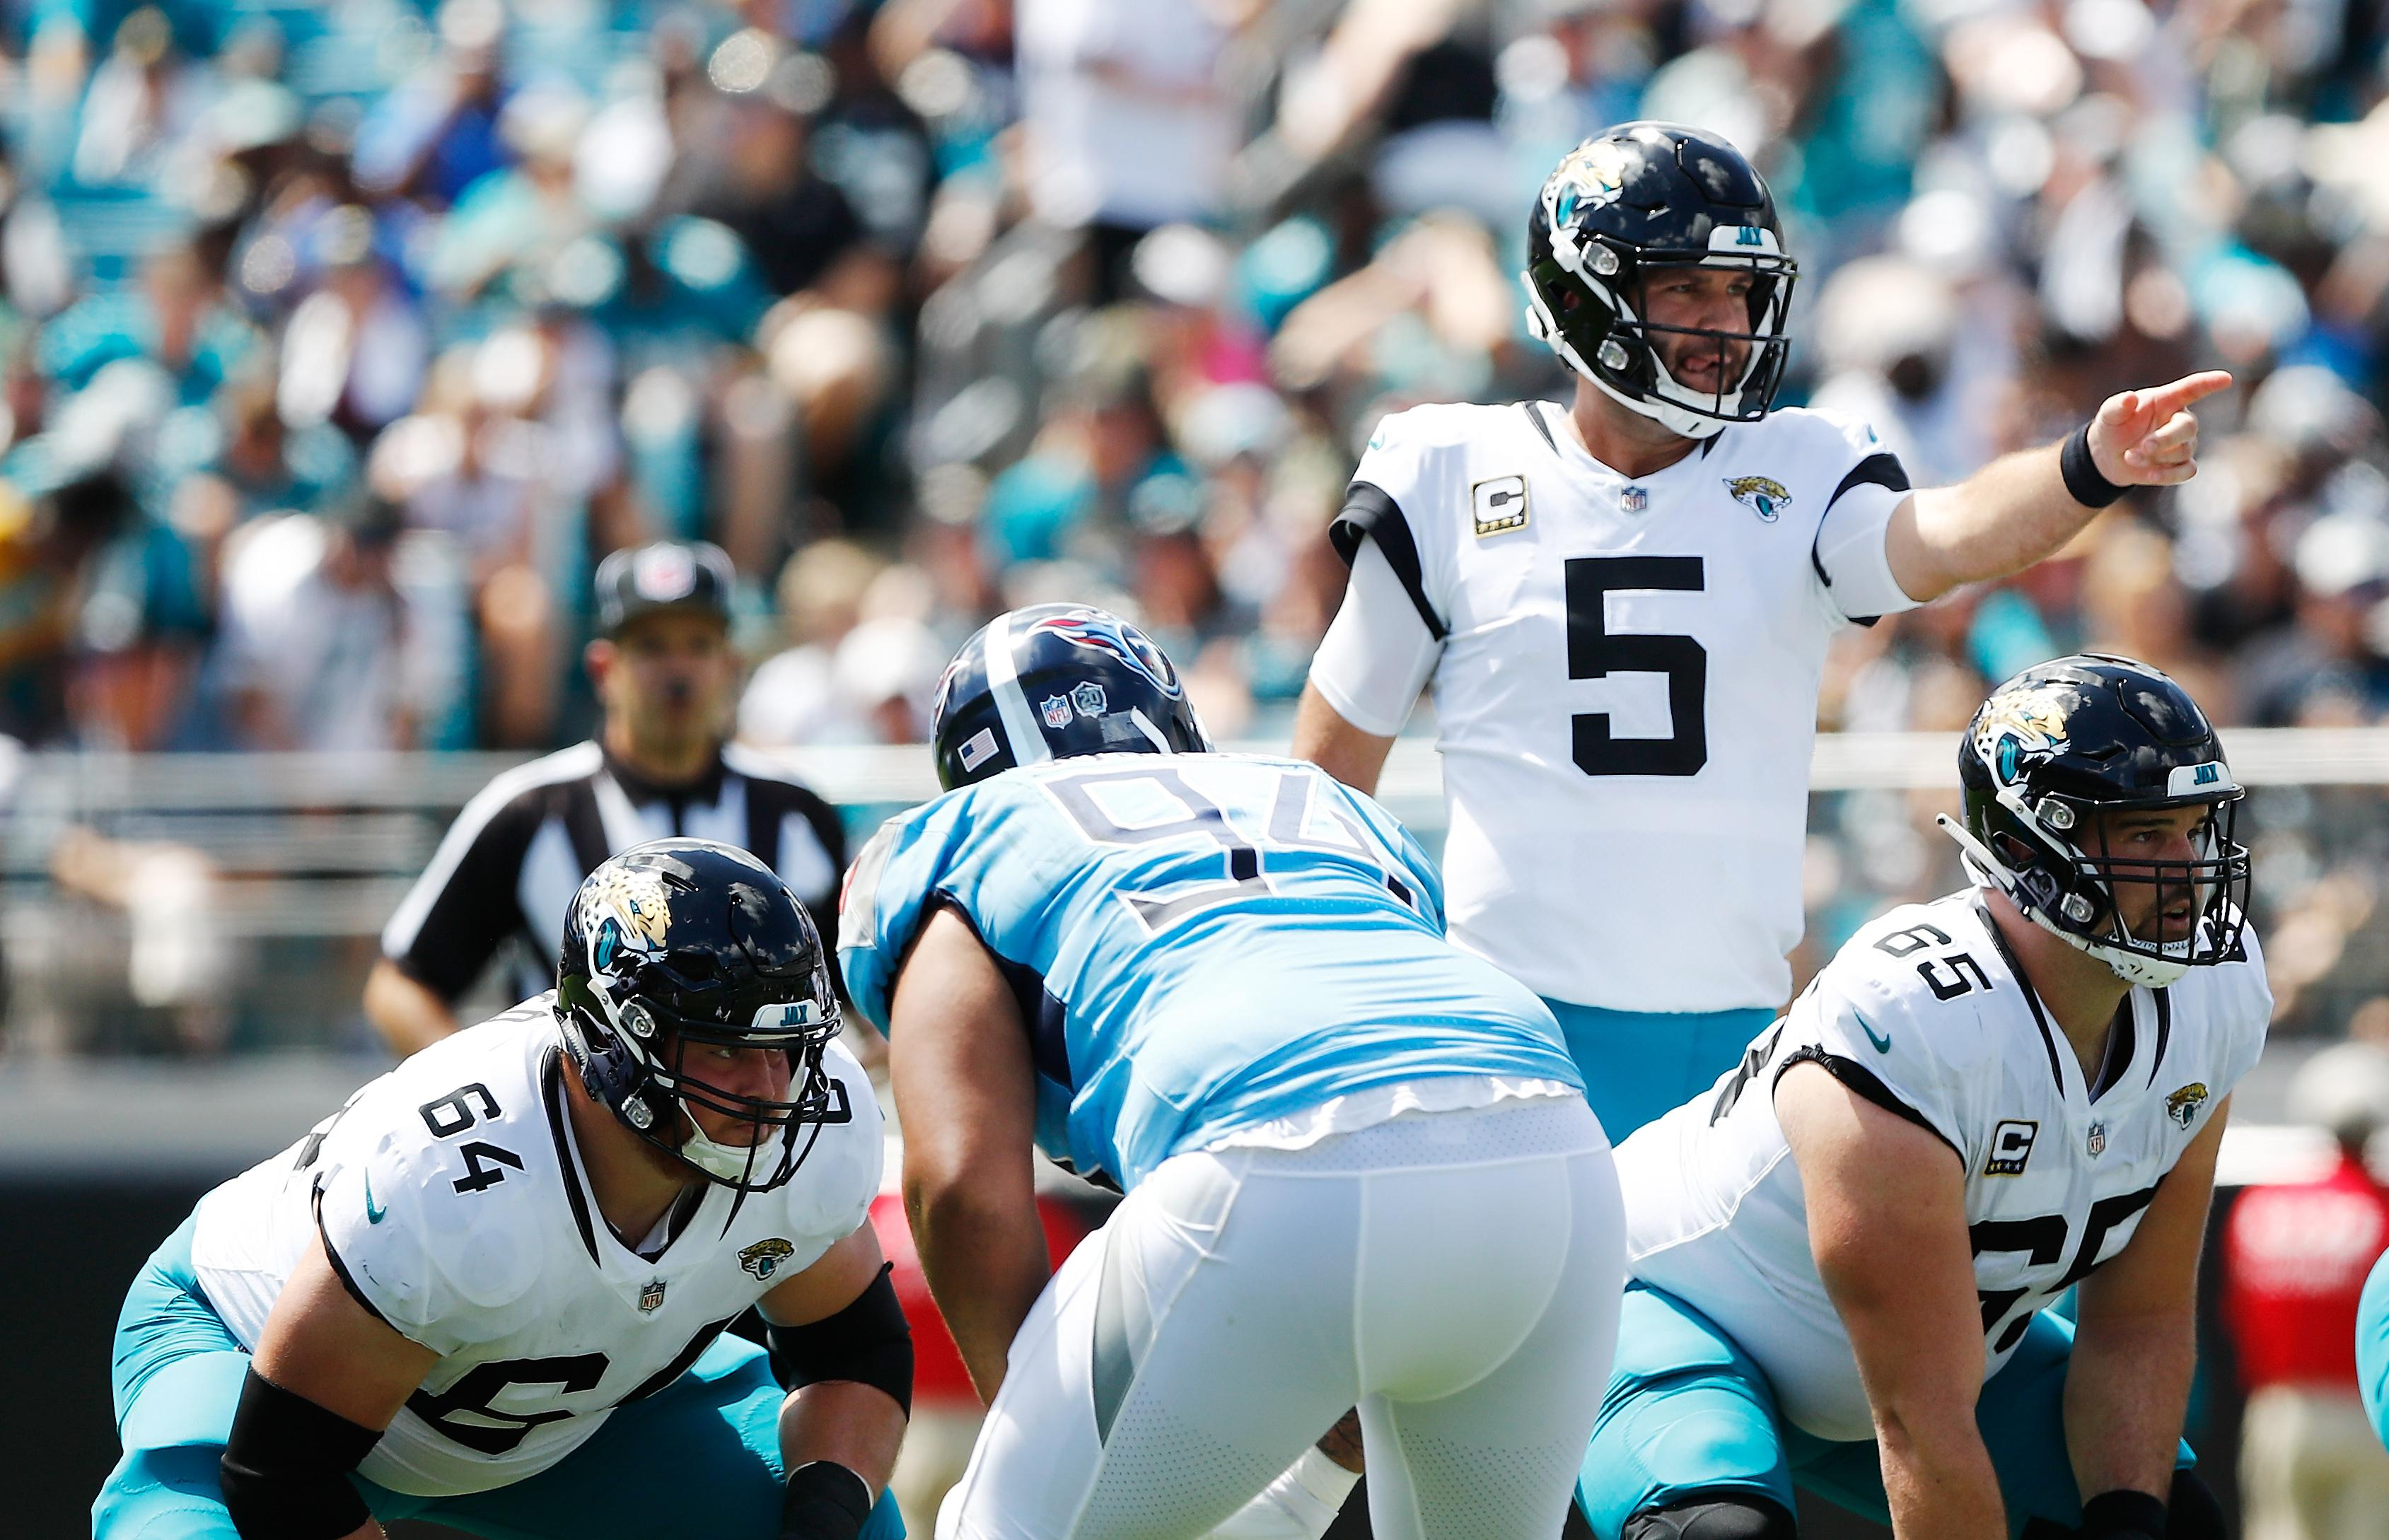 JACKSONVILLE, FL - SEPTEMBER 23:  Blake Bortles #5 of the Jacksonville Jaguars calls a play against the Tennessee Titans during their game at TIAA Bank Field on September 23, 2018 in Jacksonville, Florida.  (Photo by Wesley Hitt/Getty Images)